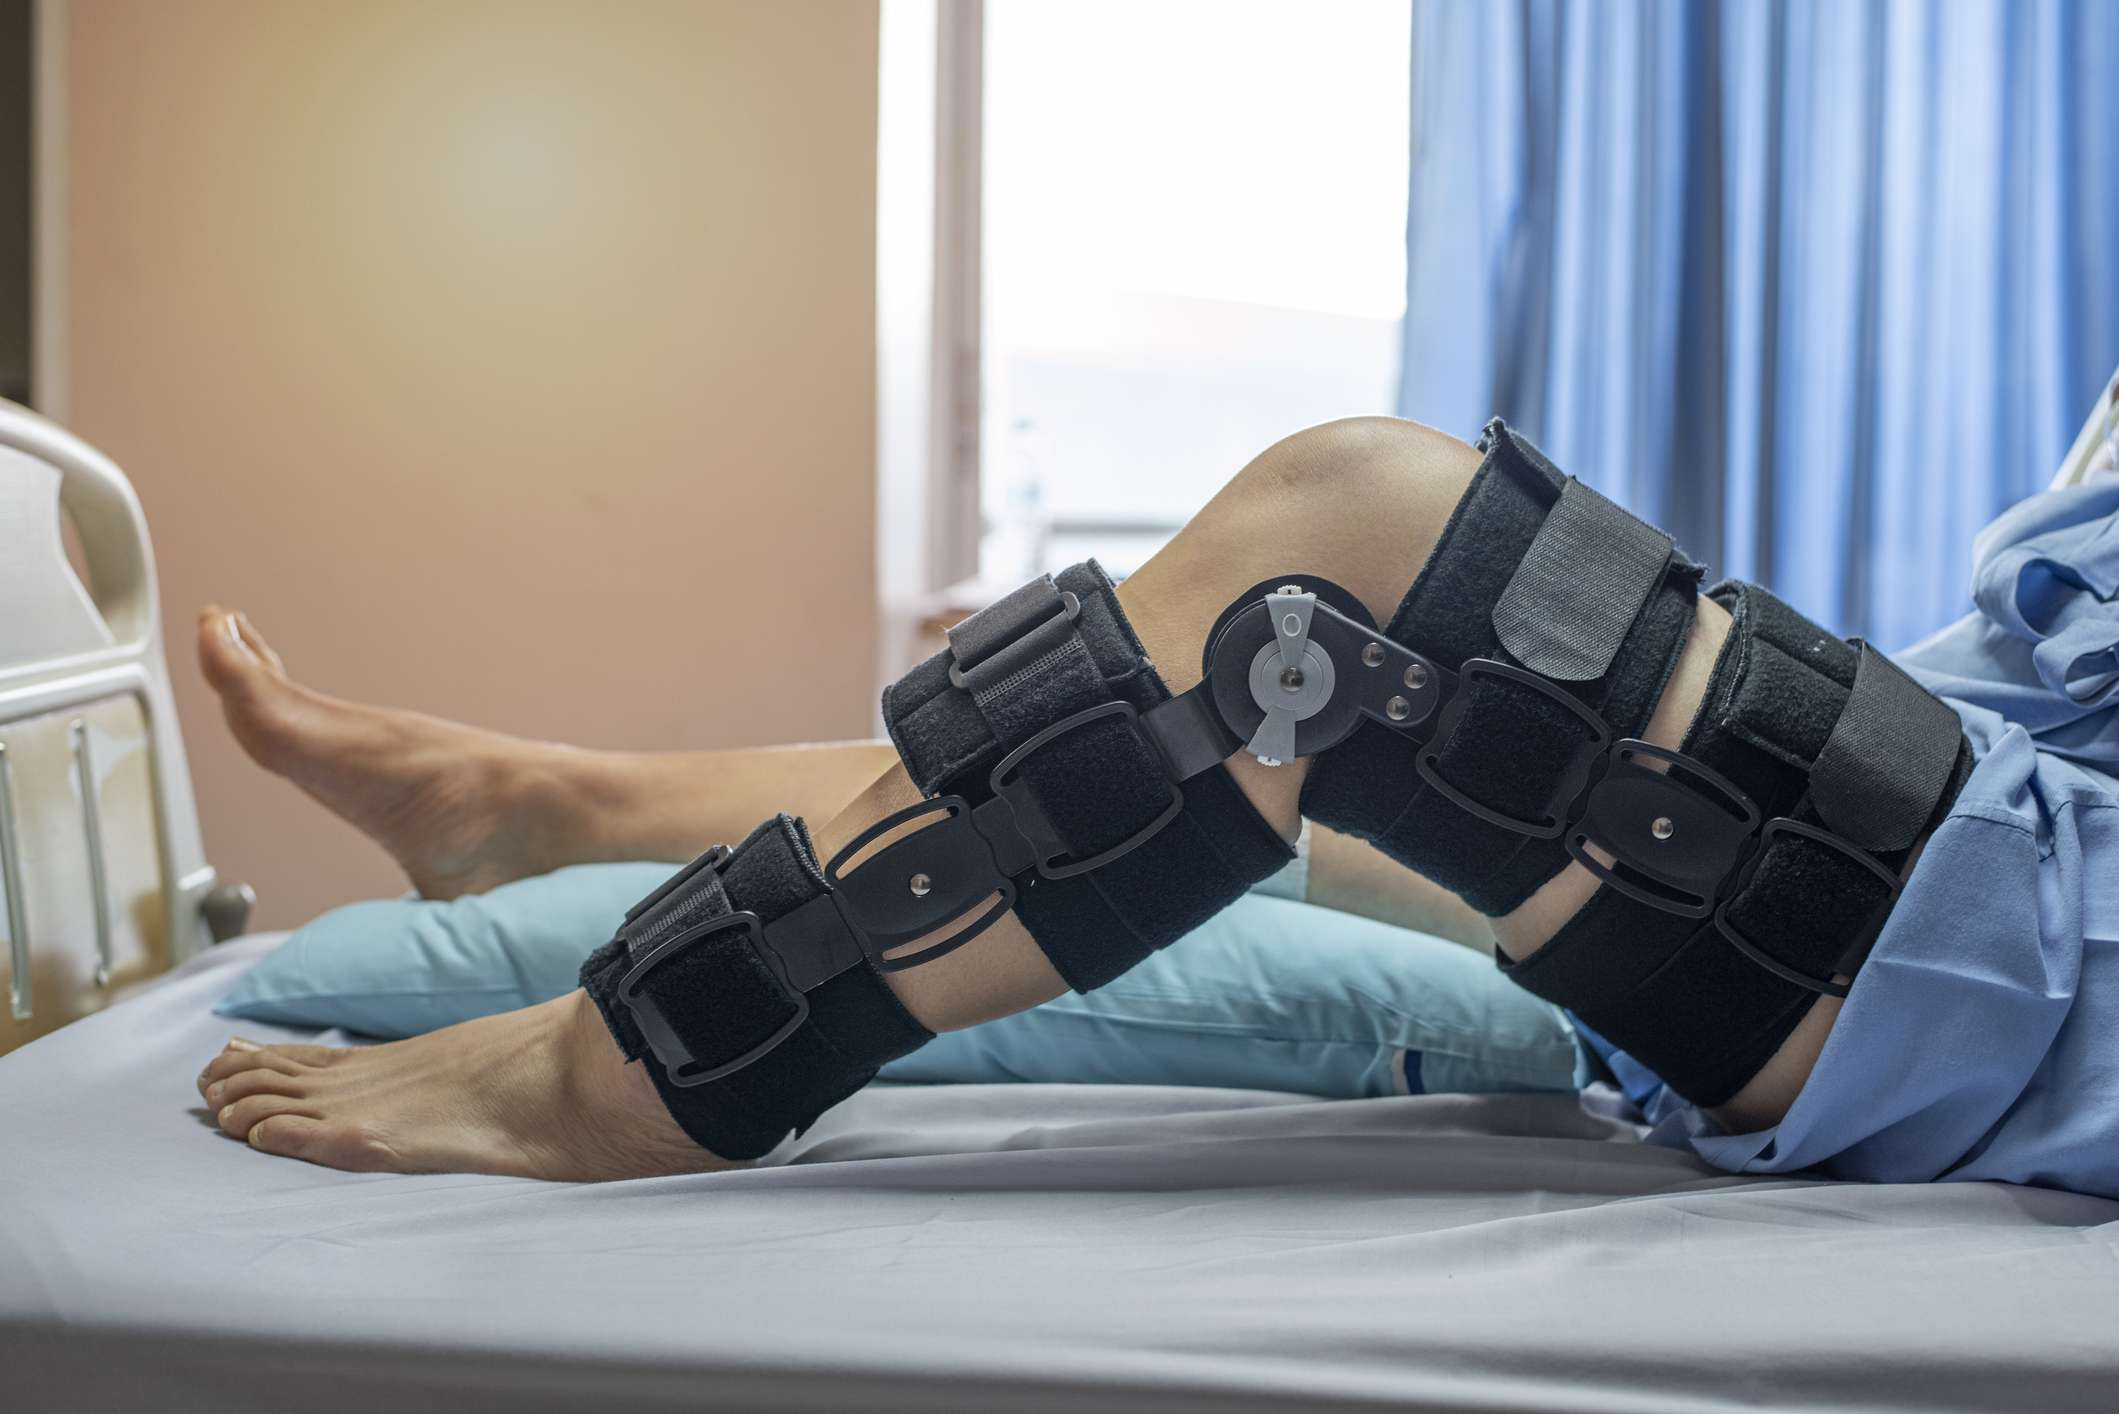 Knee brace on patient after ACL surgery